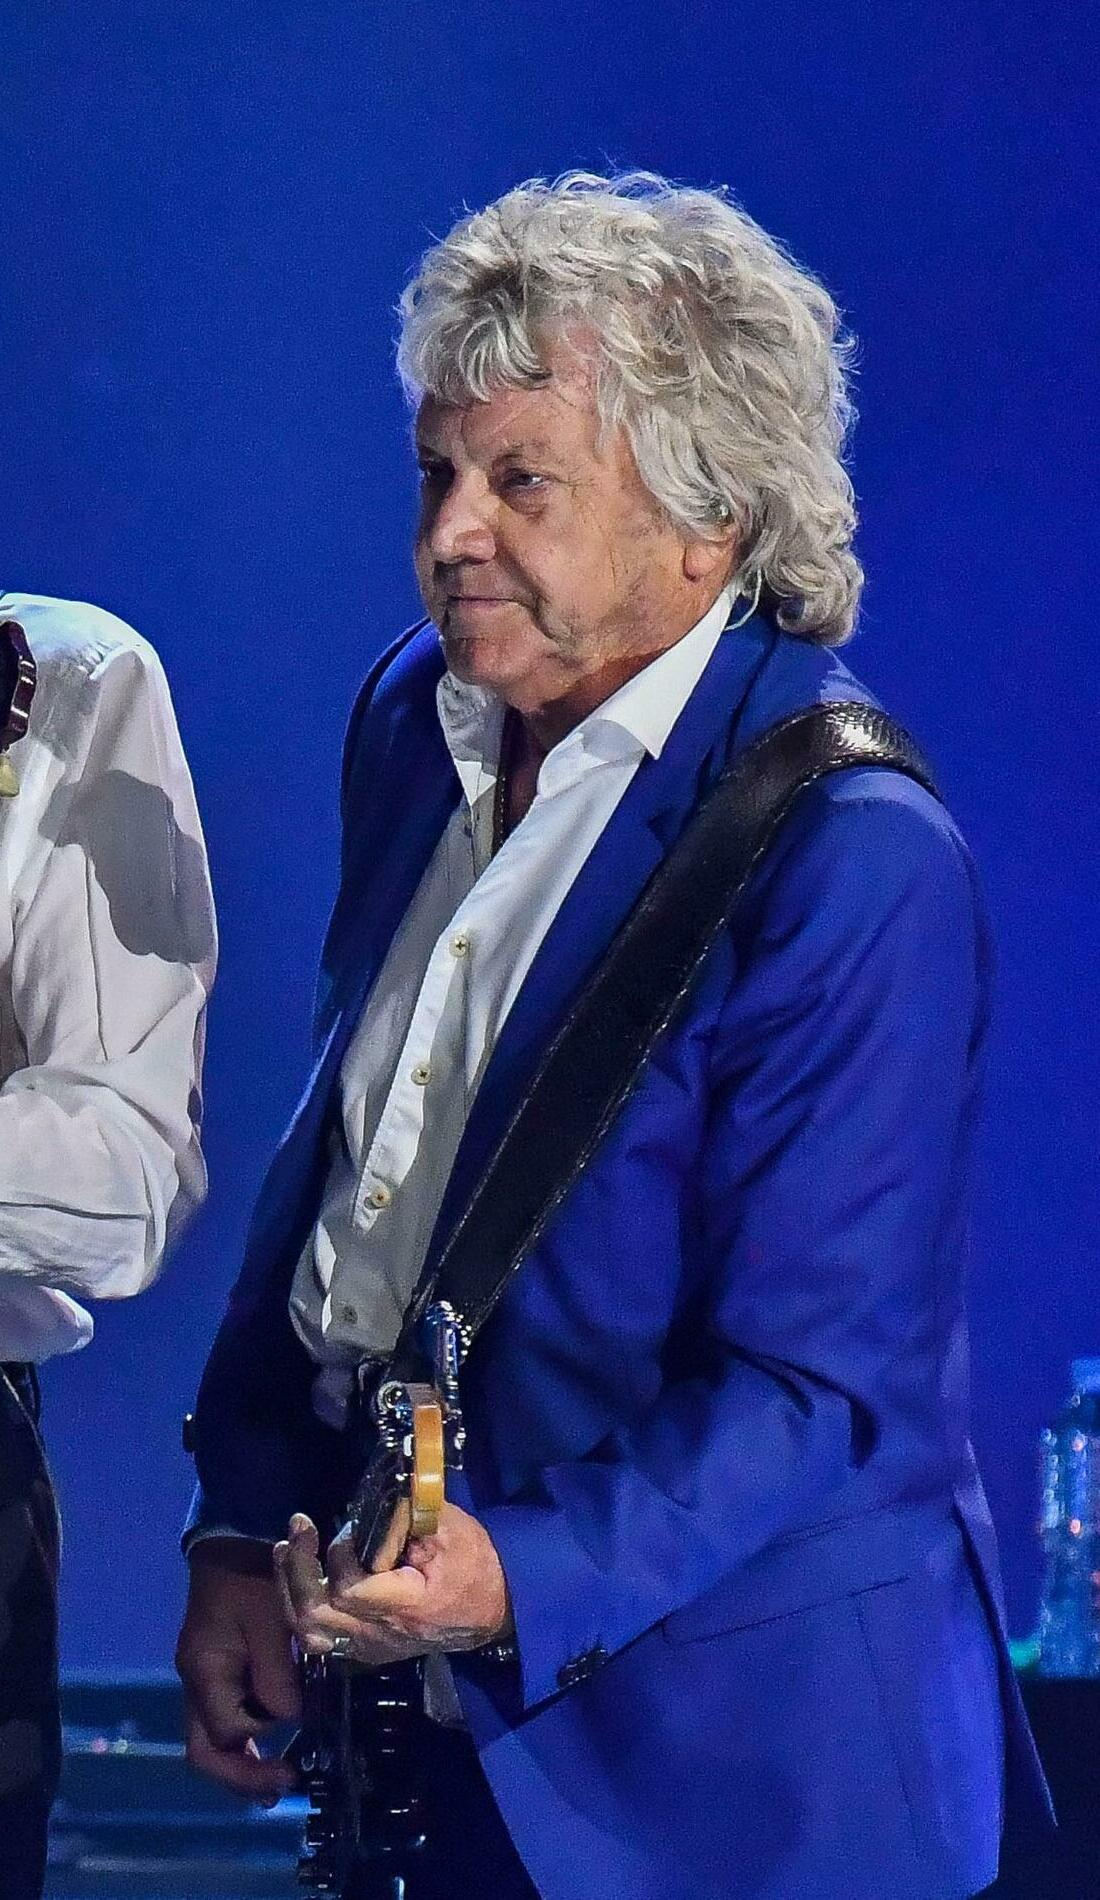 A The Moody Blues live event